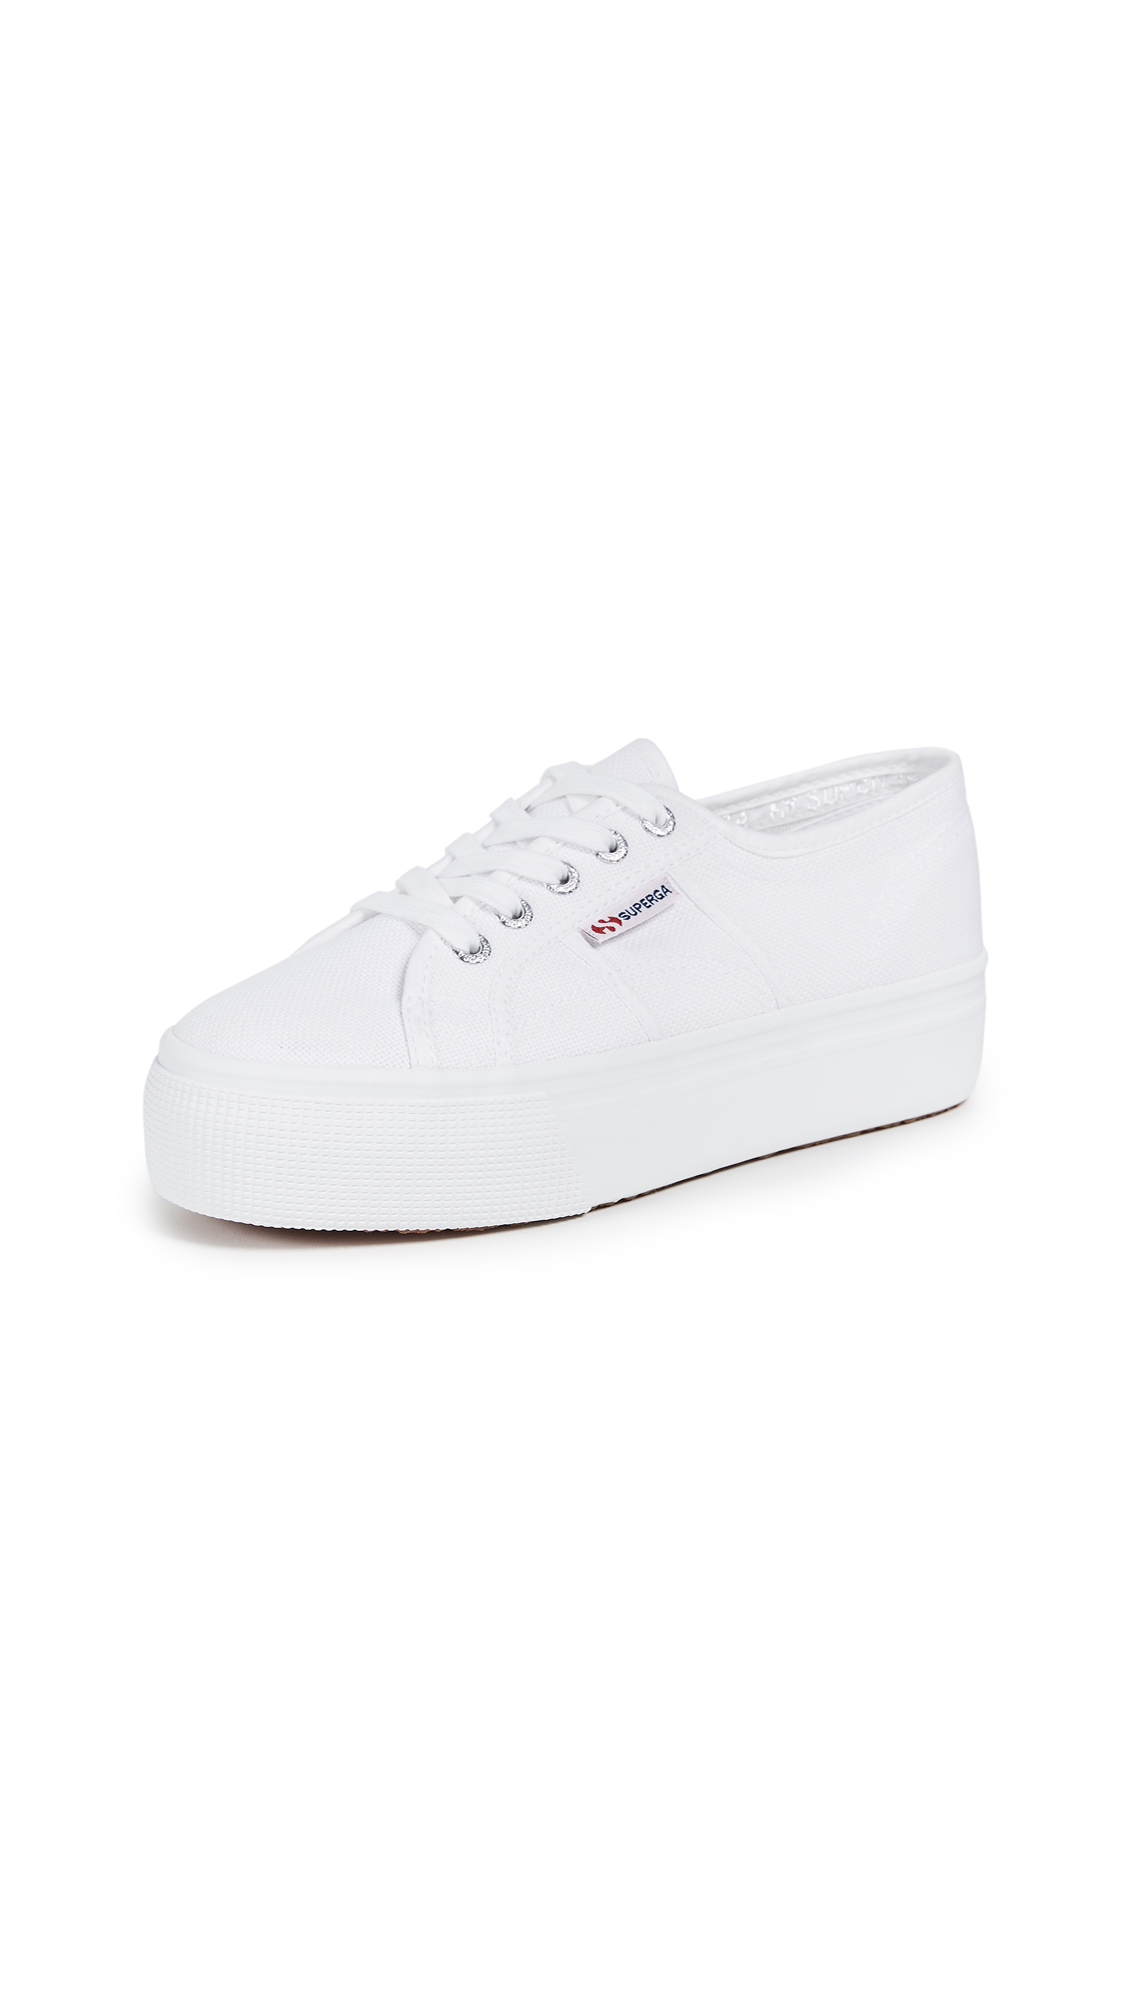 Superga 2790 ACOTW Platform Sneakers - White